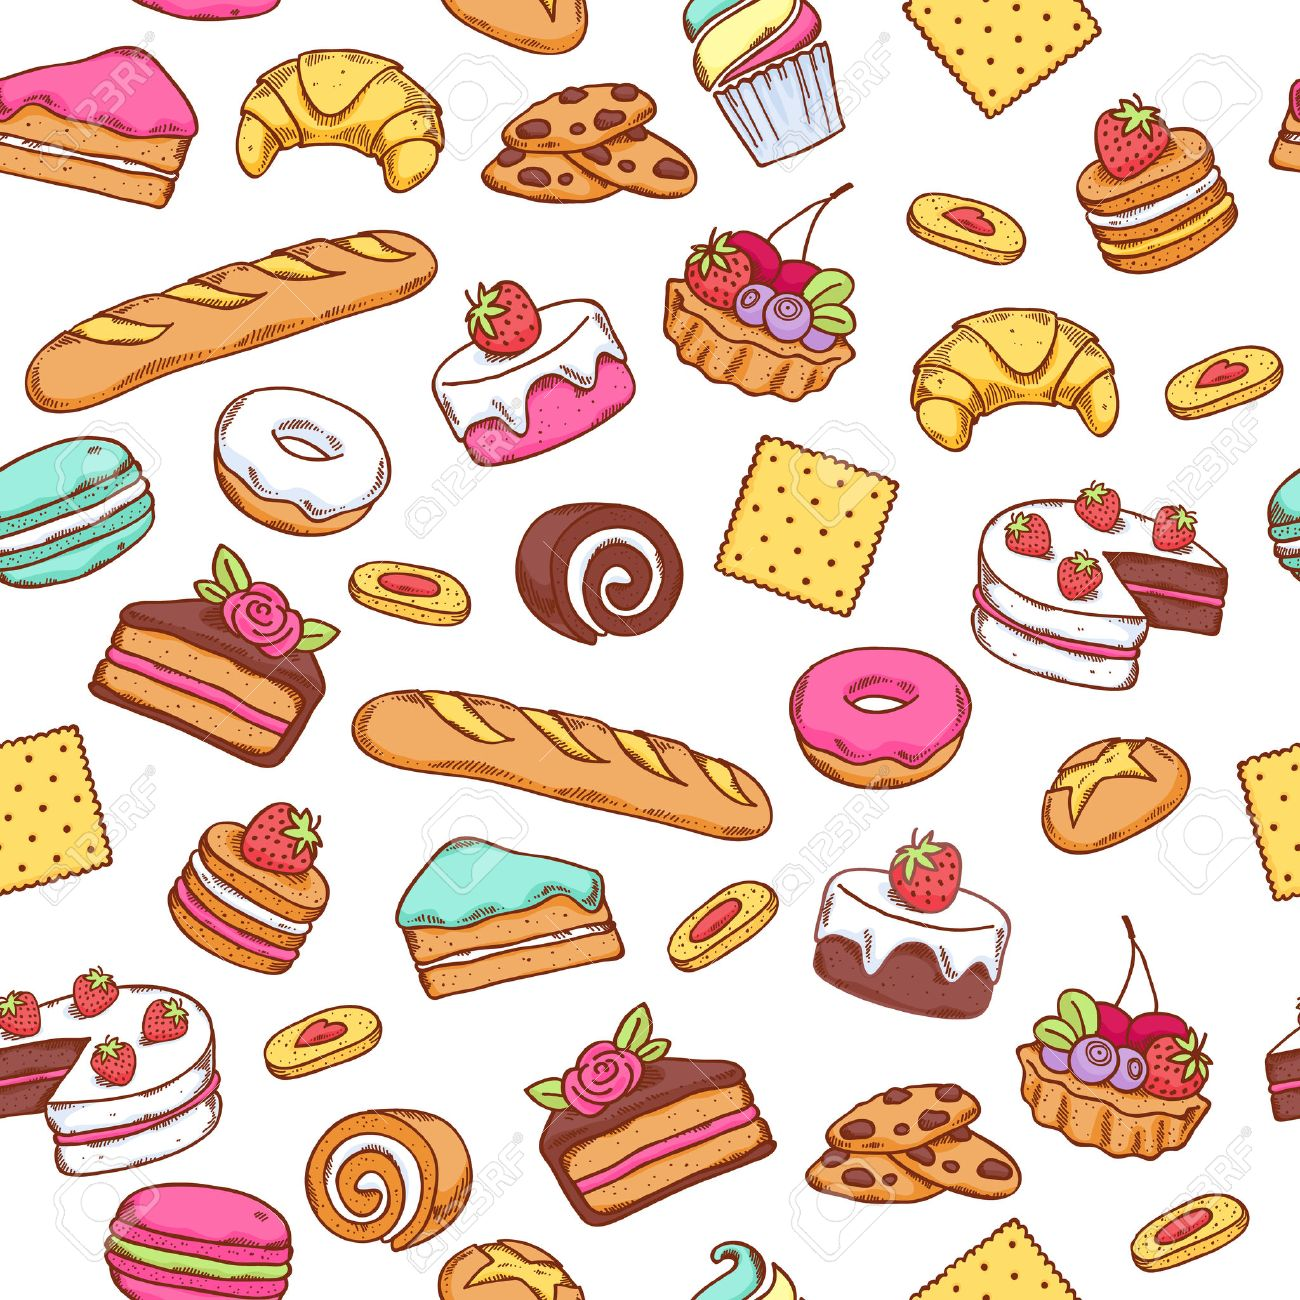 7 clipart sweet. Food station